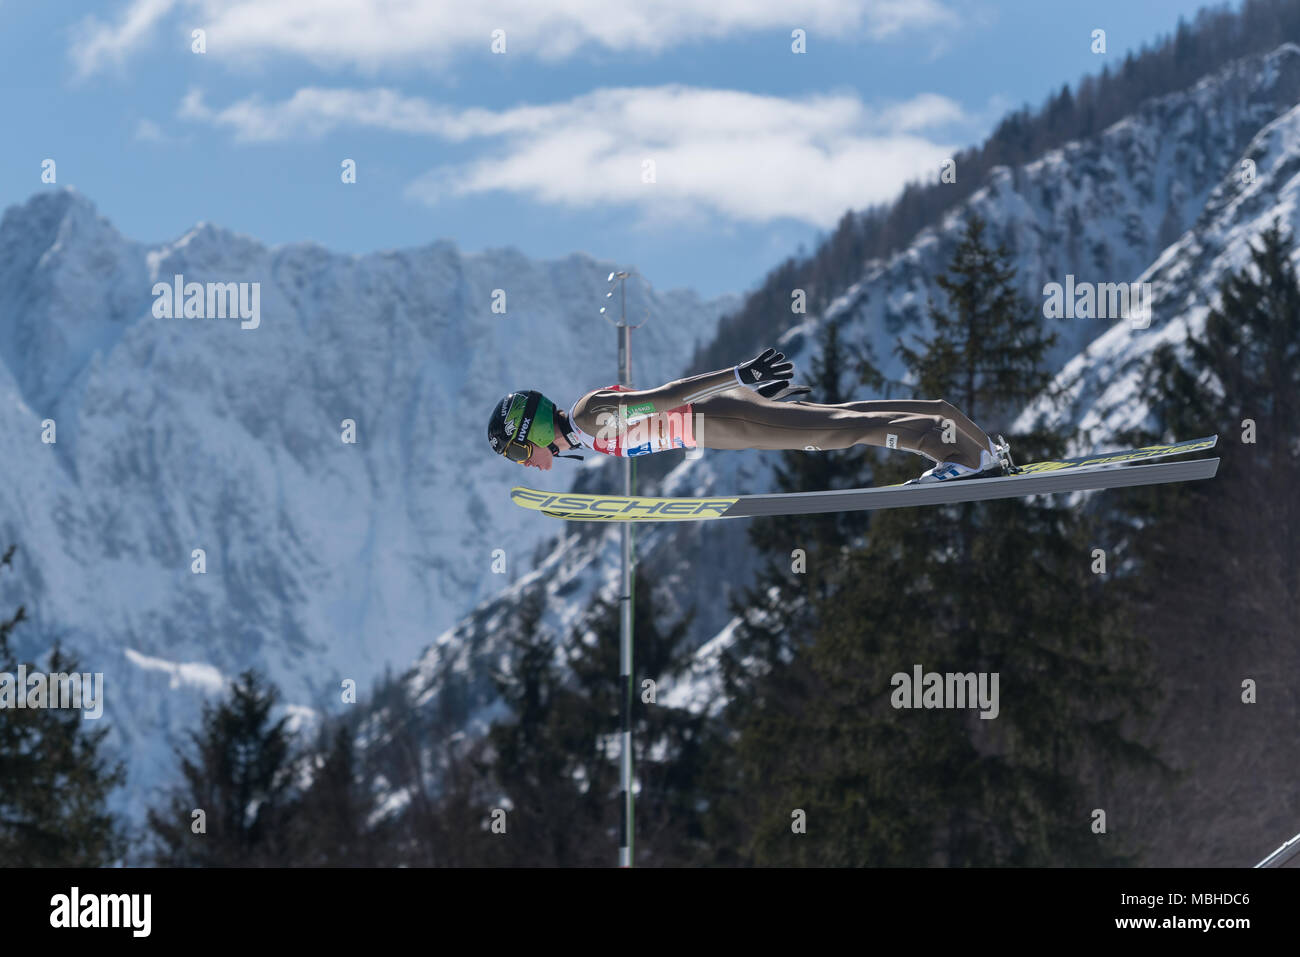 PLANICA, SLOVENIA - MARCH 24 2018 : Fis World Cup Ski Jumping Final - PREVC Peter SLO - Stock Image